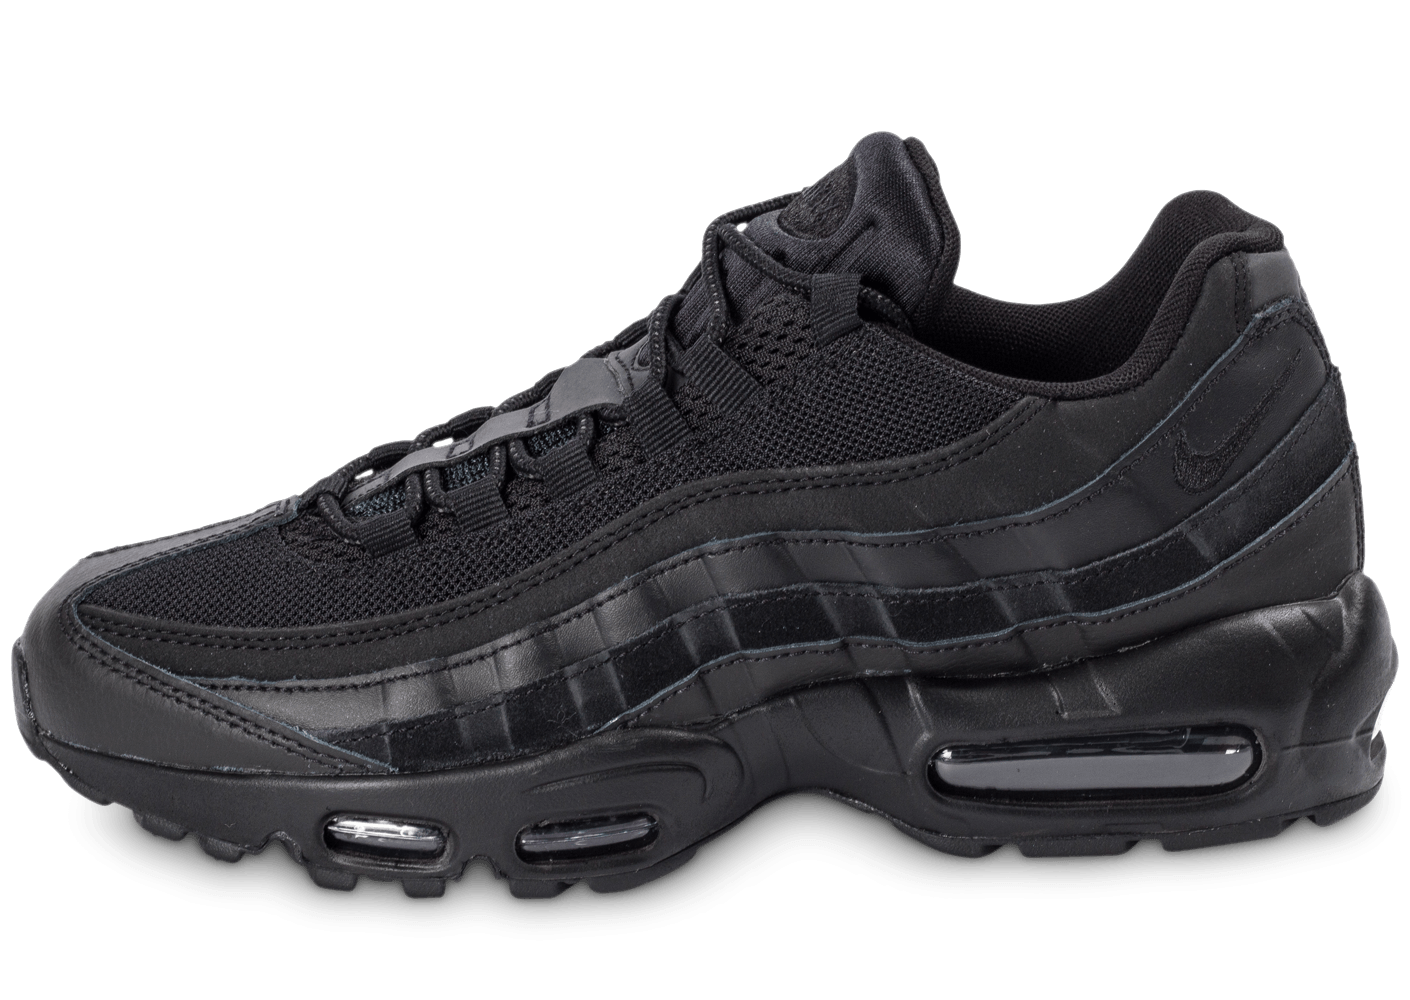 c687eceedb7 Nike Air Max 95 Essential Triple noir - Chaussures Baskets homme - Chausport